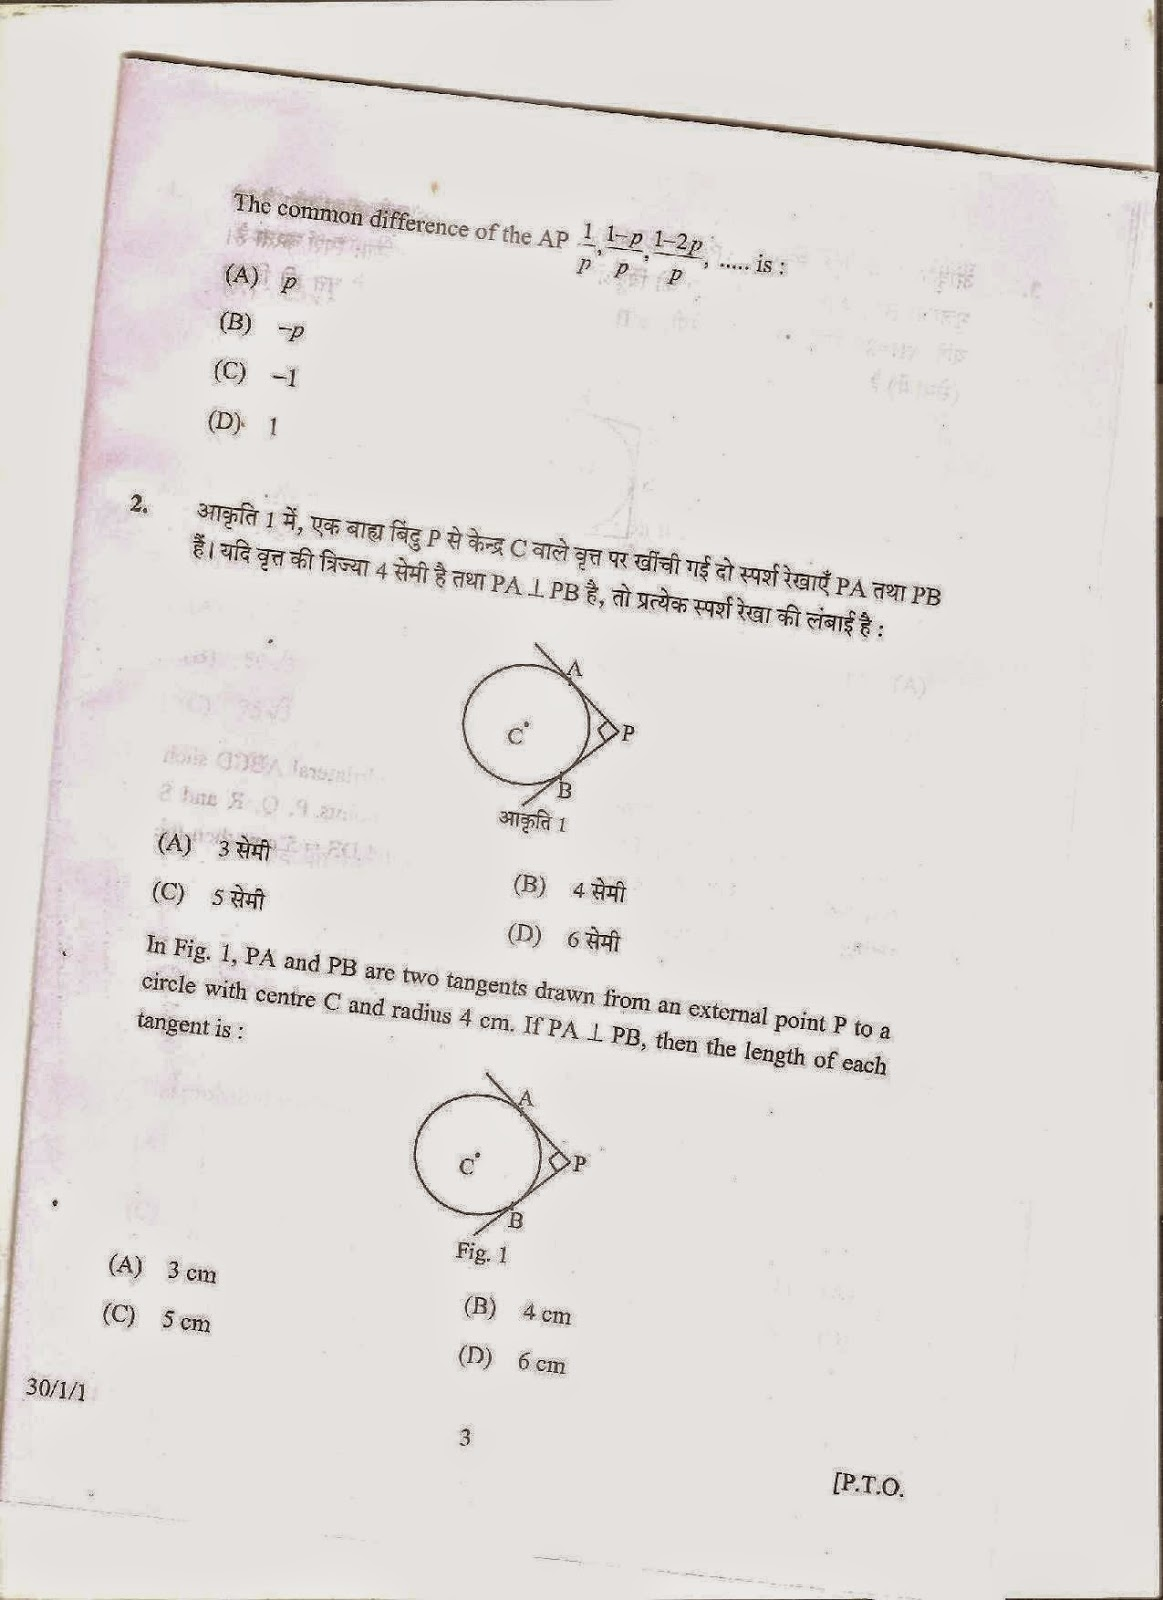 maths paper class x sa 2 Sample papers sample paper sa 1 for 2015-16 class 9th class 10th english  english hindi hindi maths maths science science social science social  maths  sanskrit for sa -2, sanskrit for sa -2, sanskrit for sa -2, sanskrit for sa -2,  biology.